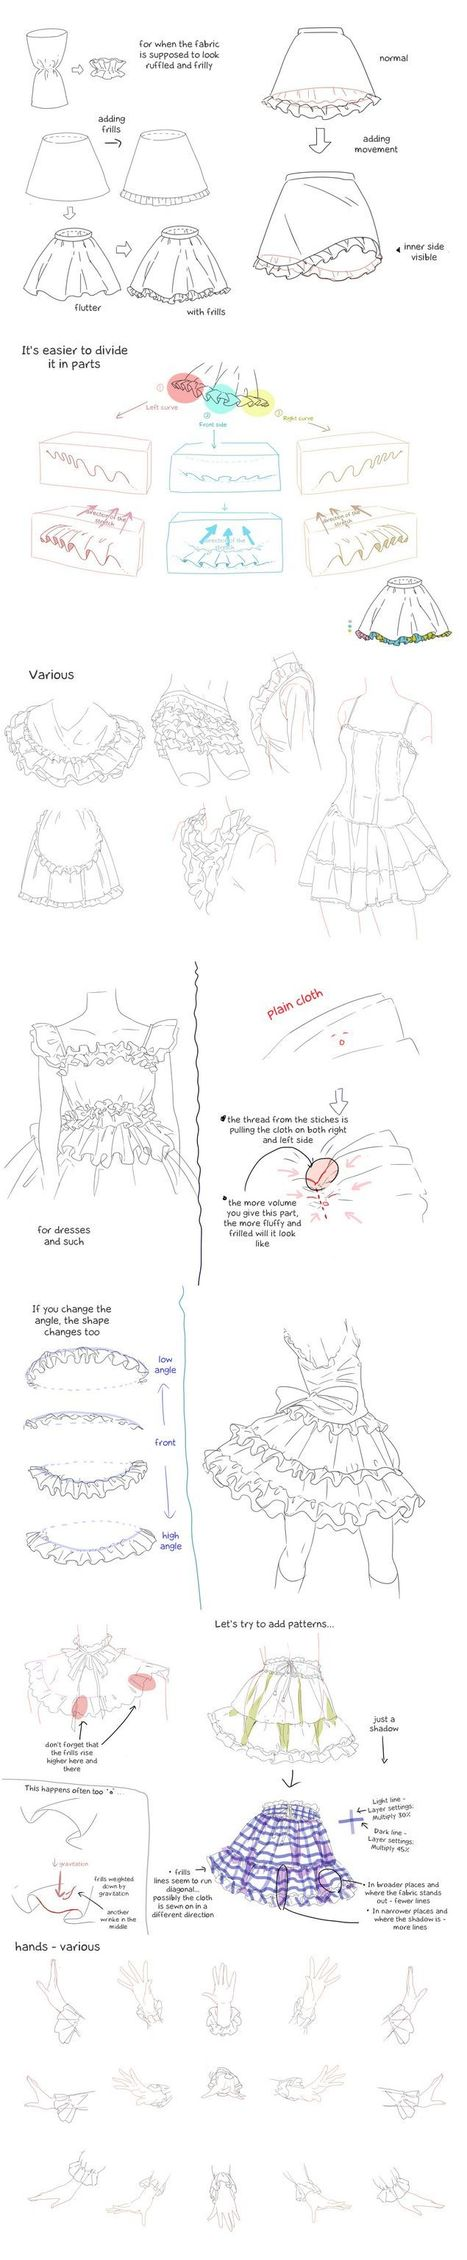 Clothing Drawing Reference Guide | Drawing References and Resources | Scoop.it